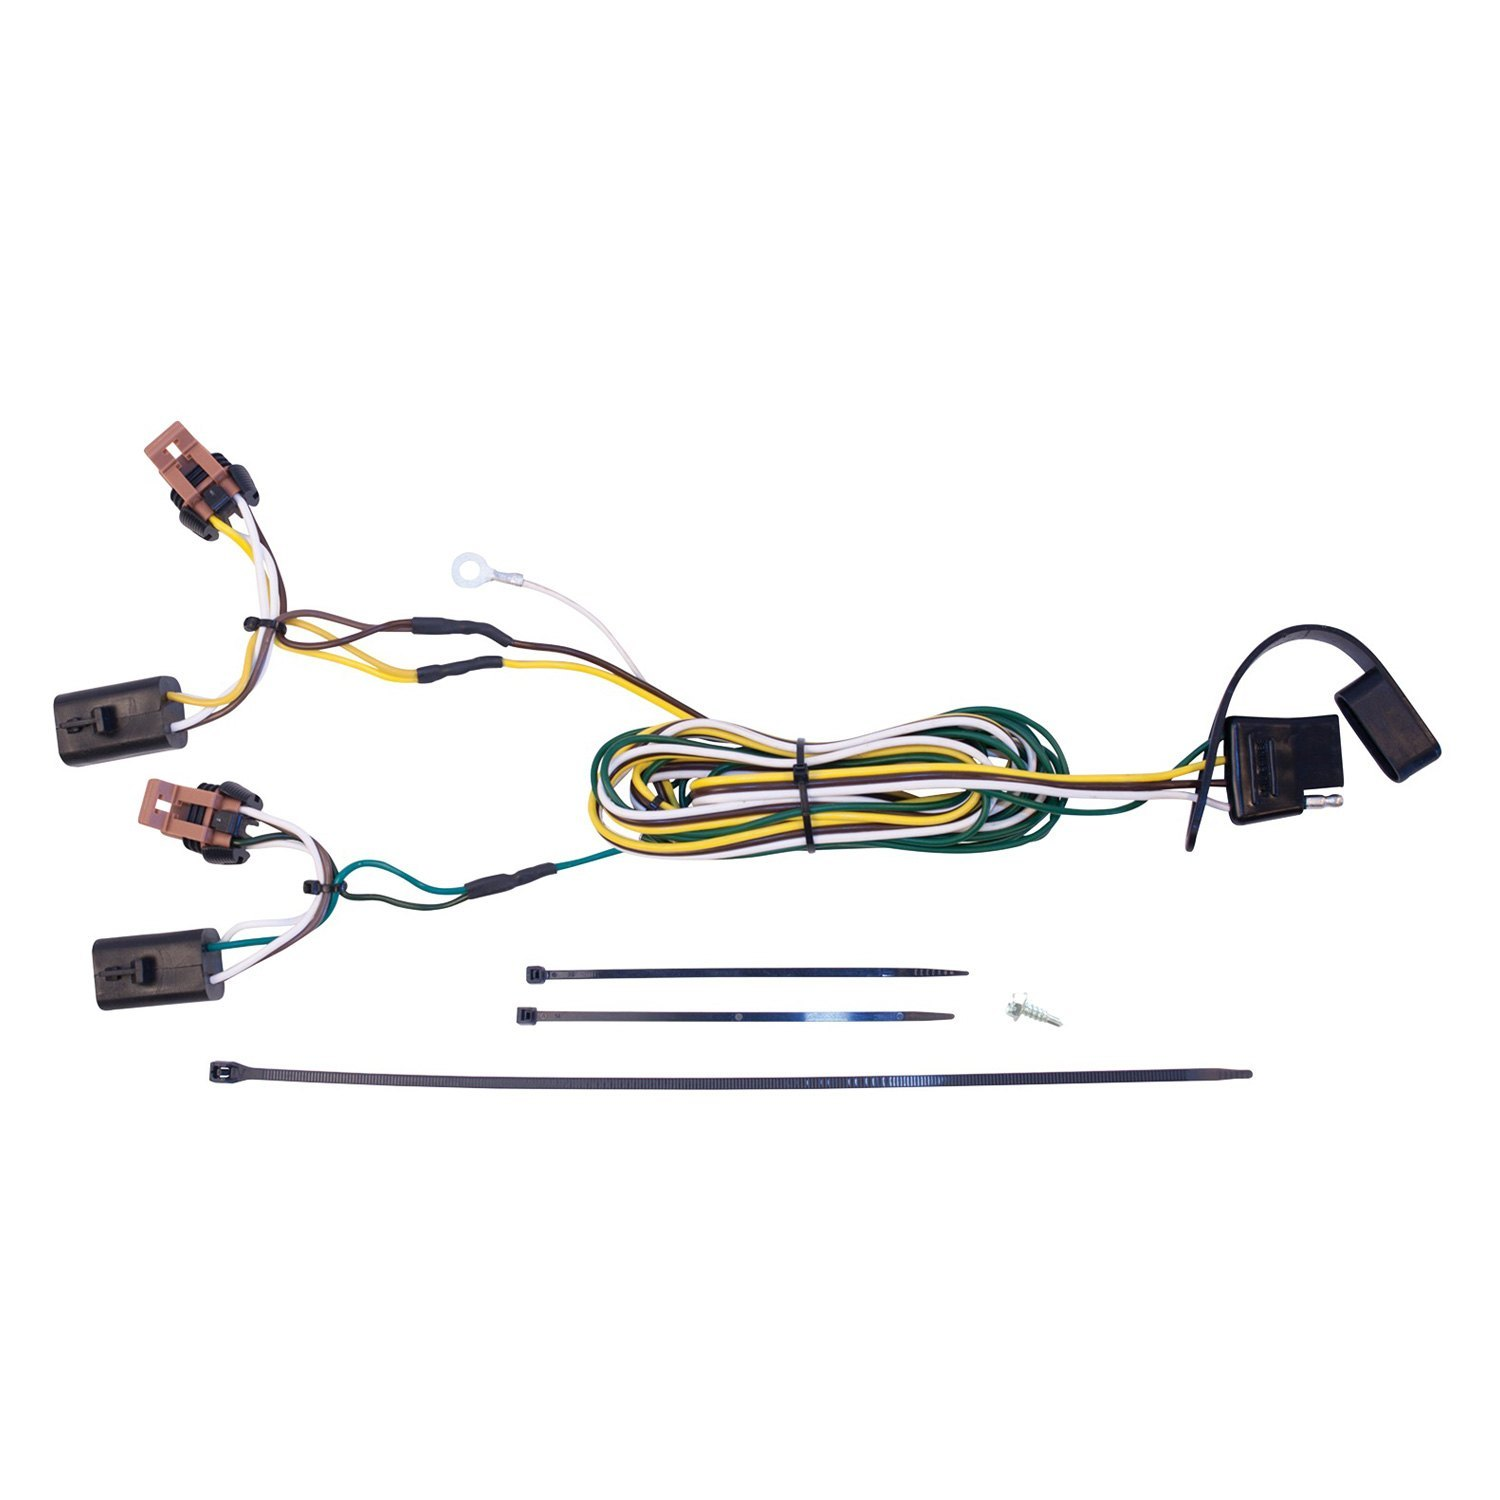 westin gmc acadia 2008 towing wiring harness. Black Bedroom Furniture Sets. Home Design Ideas